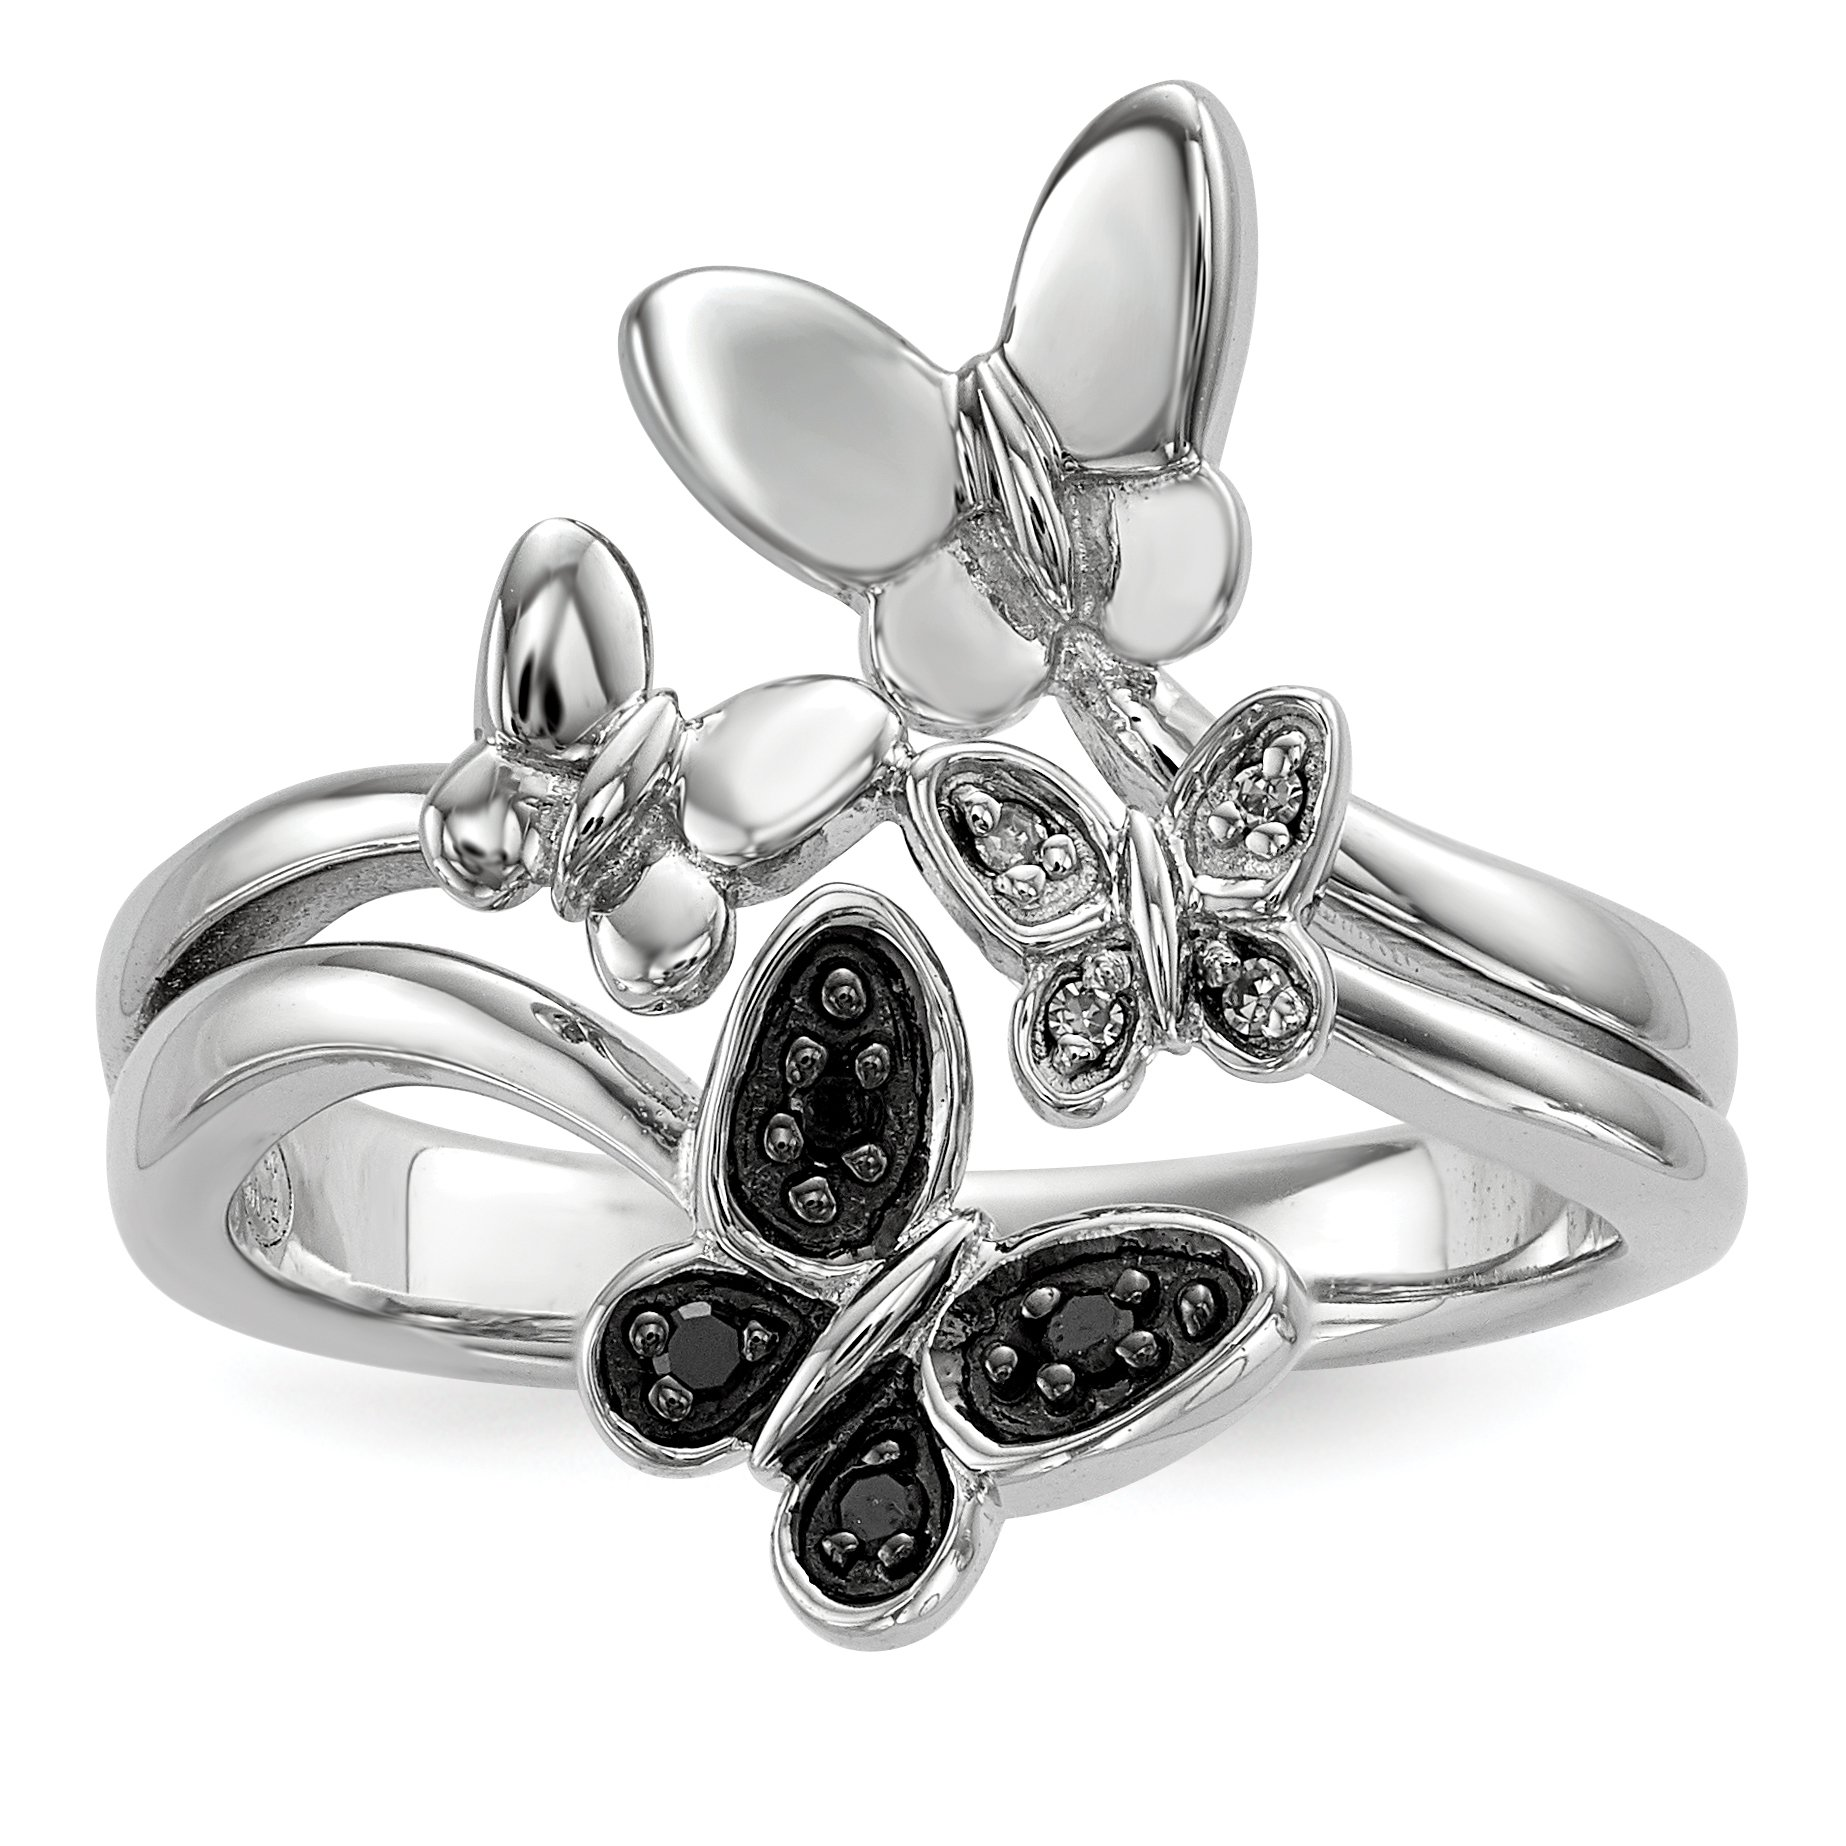 ICE CARATS 925 Sterling Silver White Black Diamond Butterfly Band Ring Size 6.00 Fine Jewelry Gift Set For Women Heart